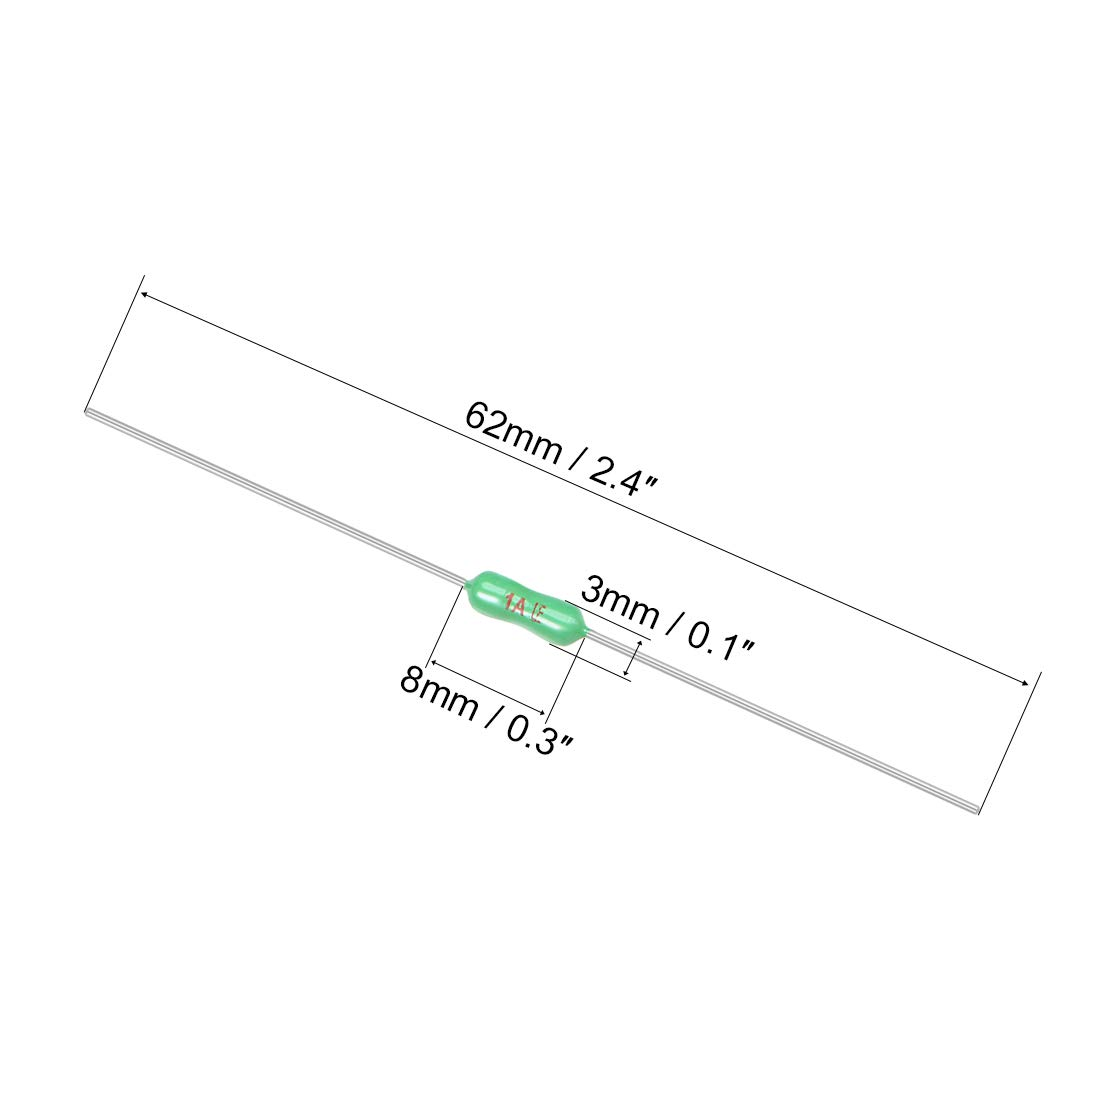 uxcell Pico Fuse 250V 1A Fast Blow Axial Leaded 3mm x 62mm for Telecom Communication 5pcs